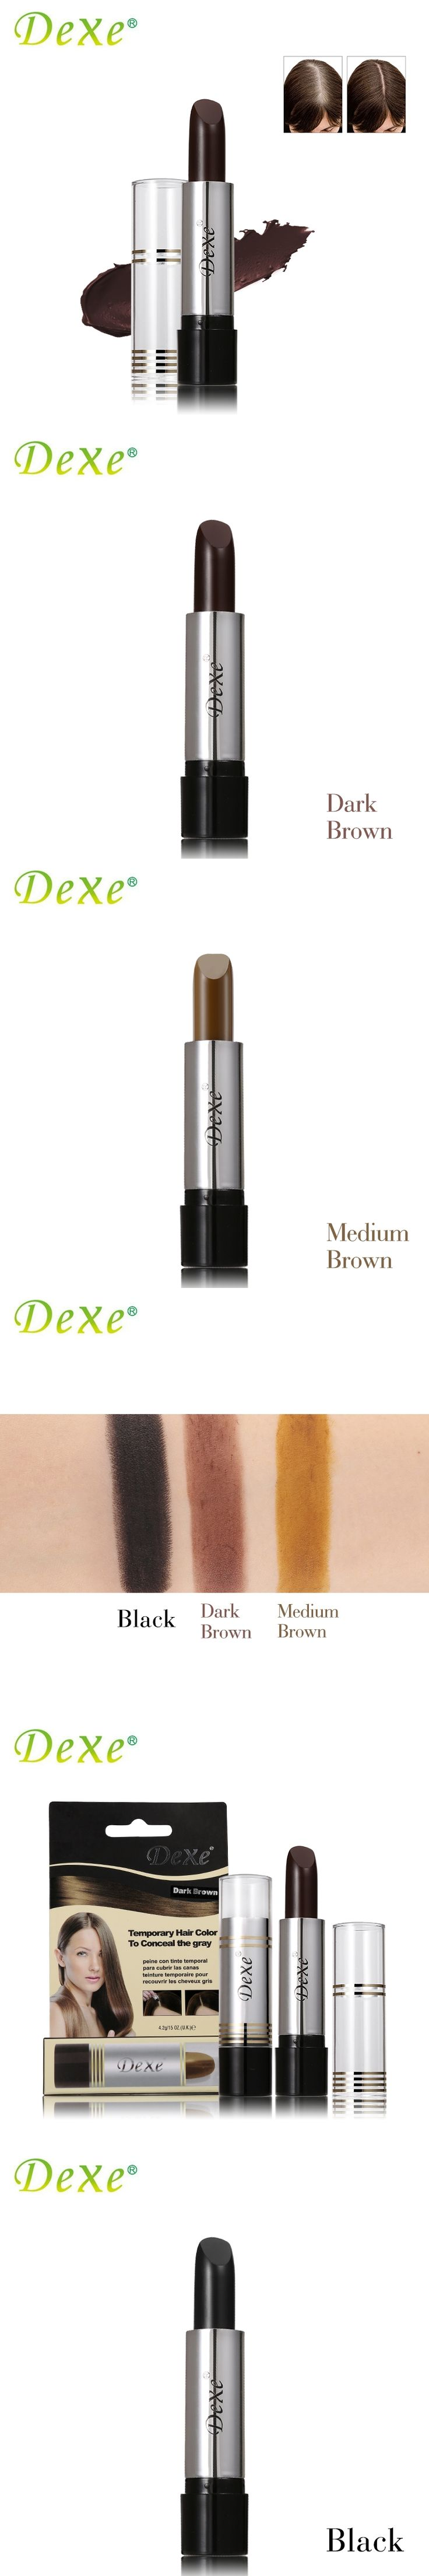 DEXE Temporary Hair Dye Hair Color Stick Hair Coloring Cream Products To Conceal The Gray Root Cover Up Black Dark/Medium Brown